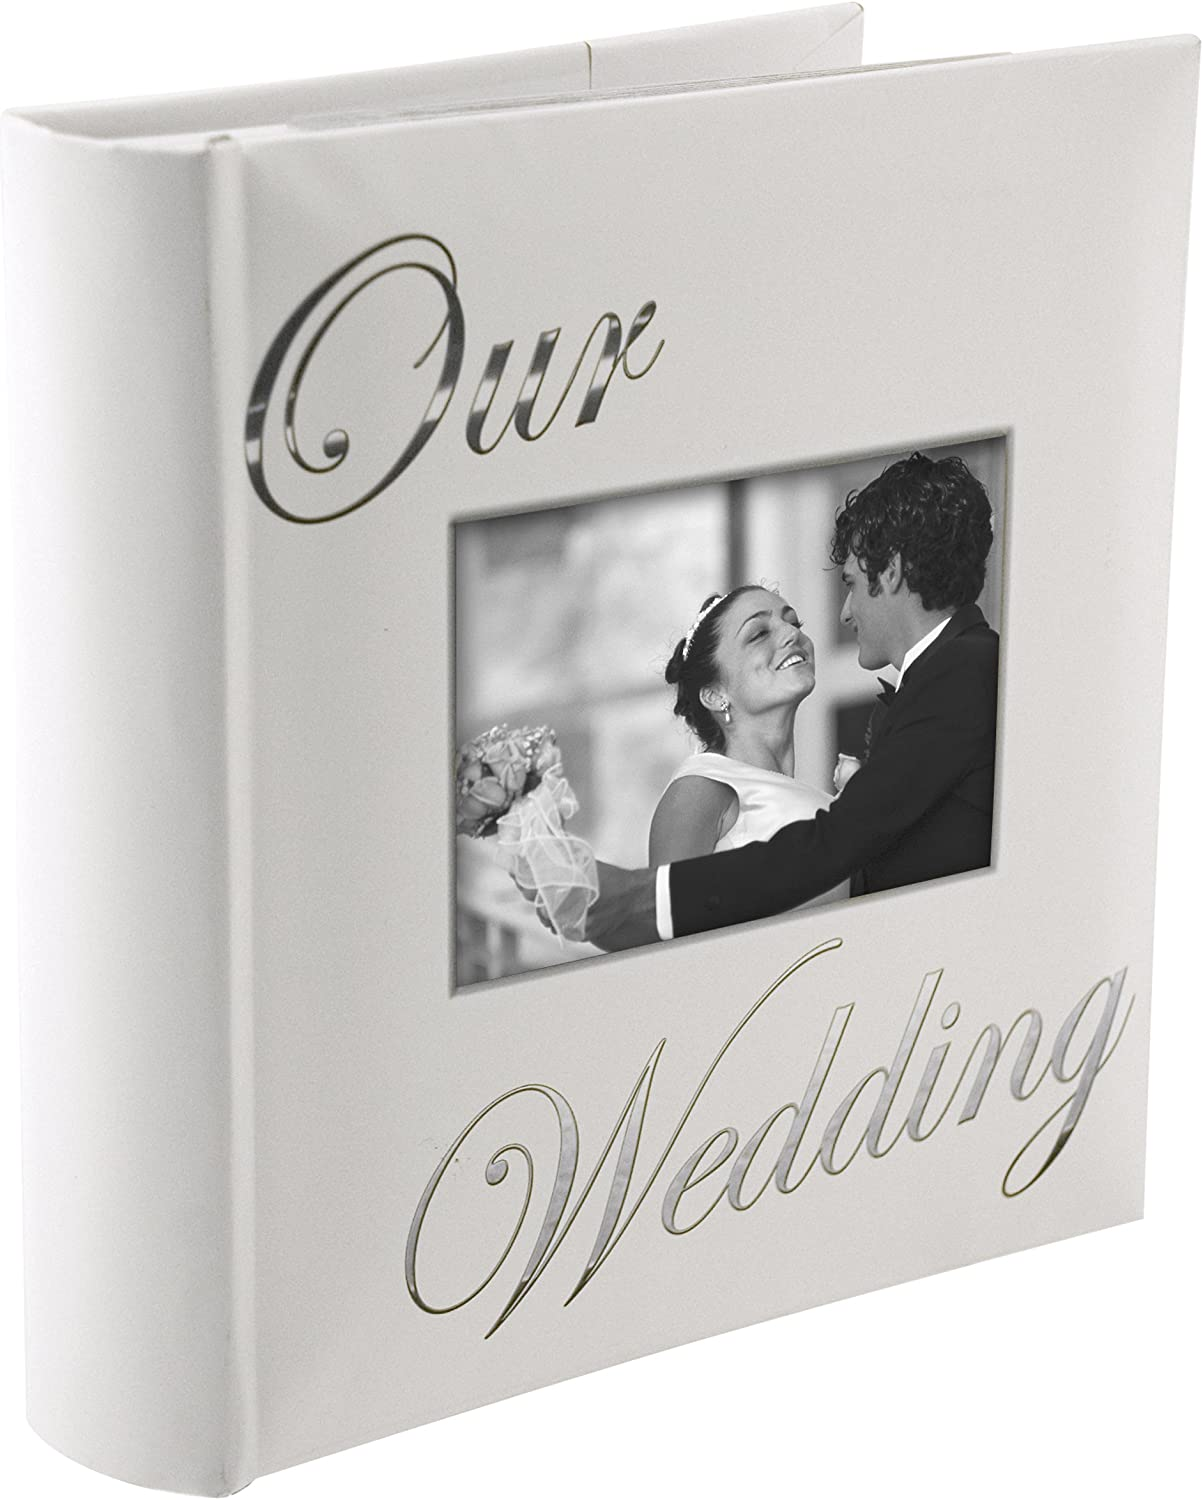 OUR WEDDING album by Malden holds 160 photos - 4x6